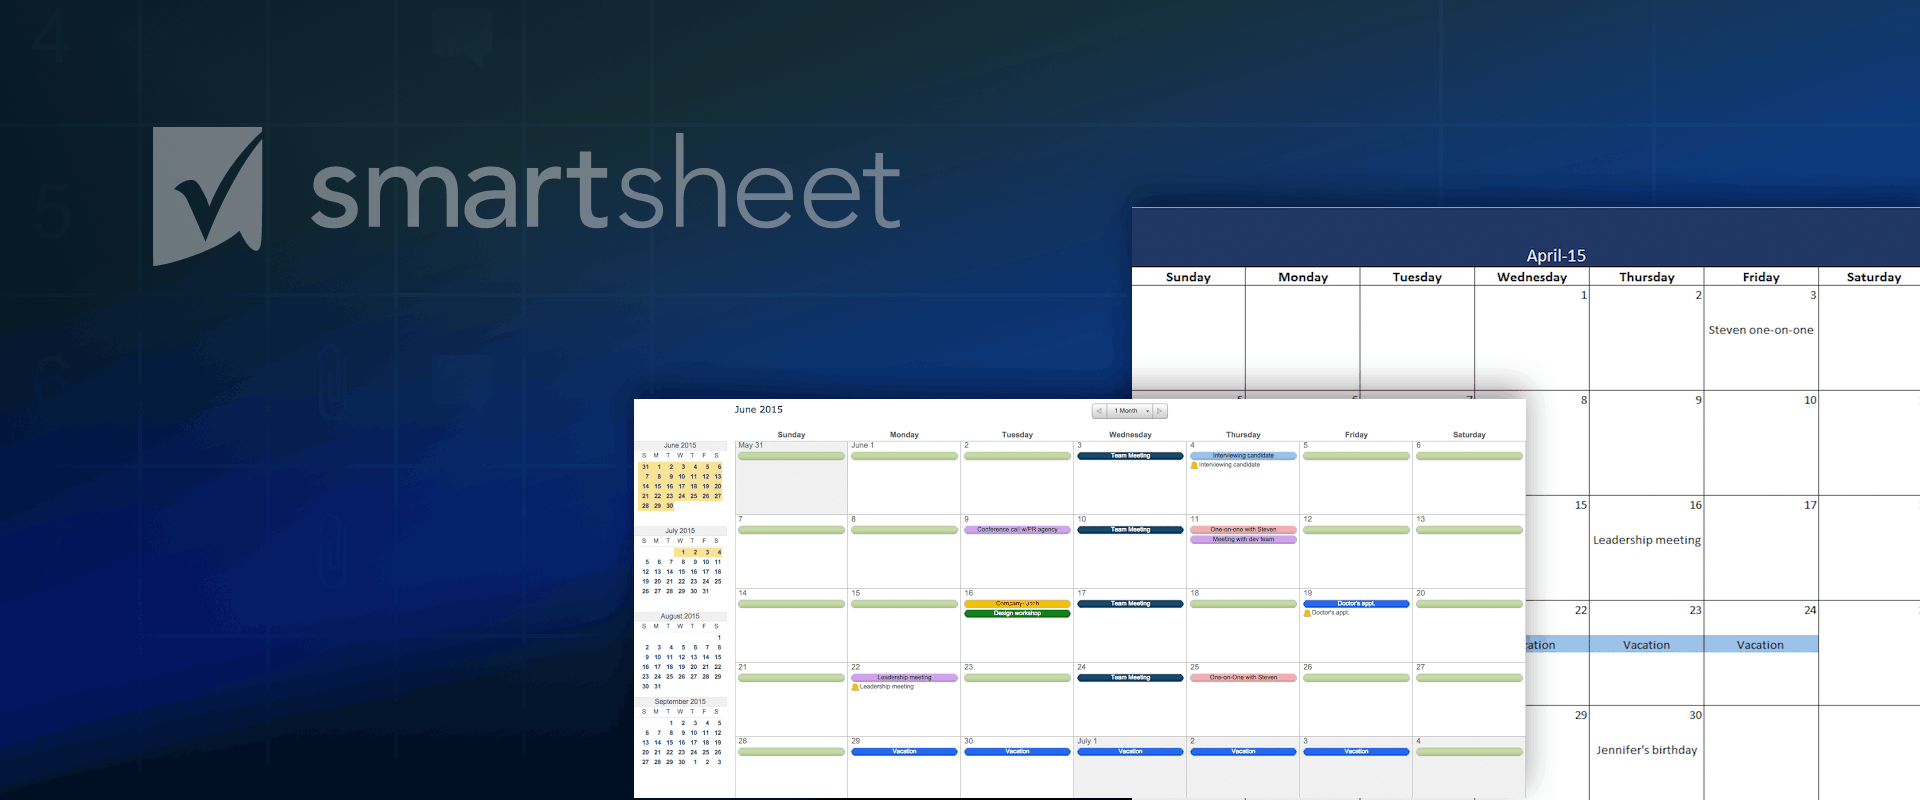 Ediblewildsus  Stunning Make A  Calendar In Excel Includes Free Template With Exciting Excel Forms Download Besides Microsoft Excel Price Furthermore How To Create A Shared Excel File With Appealing Excel H Lookup Also Excel Not Working In Addition Excel Plugin And Excel Staffing Agency As Well As If Empty Excel Additionally Subscript Microsoft Excel From Smartsheetcom With Ediblewildsus  Exciting Make A  Calendar In Excel Includes Free Template With Appealing Excel Forms Download Besides Microsoft Excel Price Furthermore How To Create A Shared Excel File And Stunning Excel H Lookup Also Excel Not Working In Addition Excel Plugin From Smartsheetcom